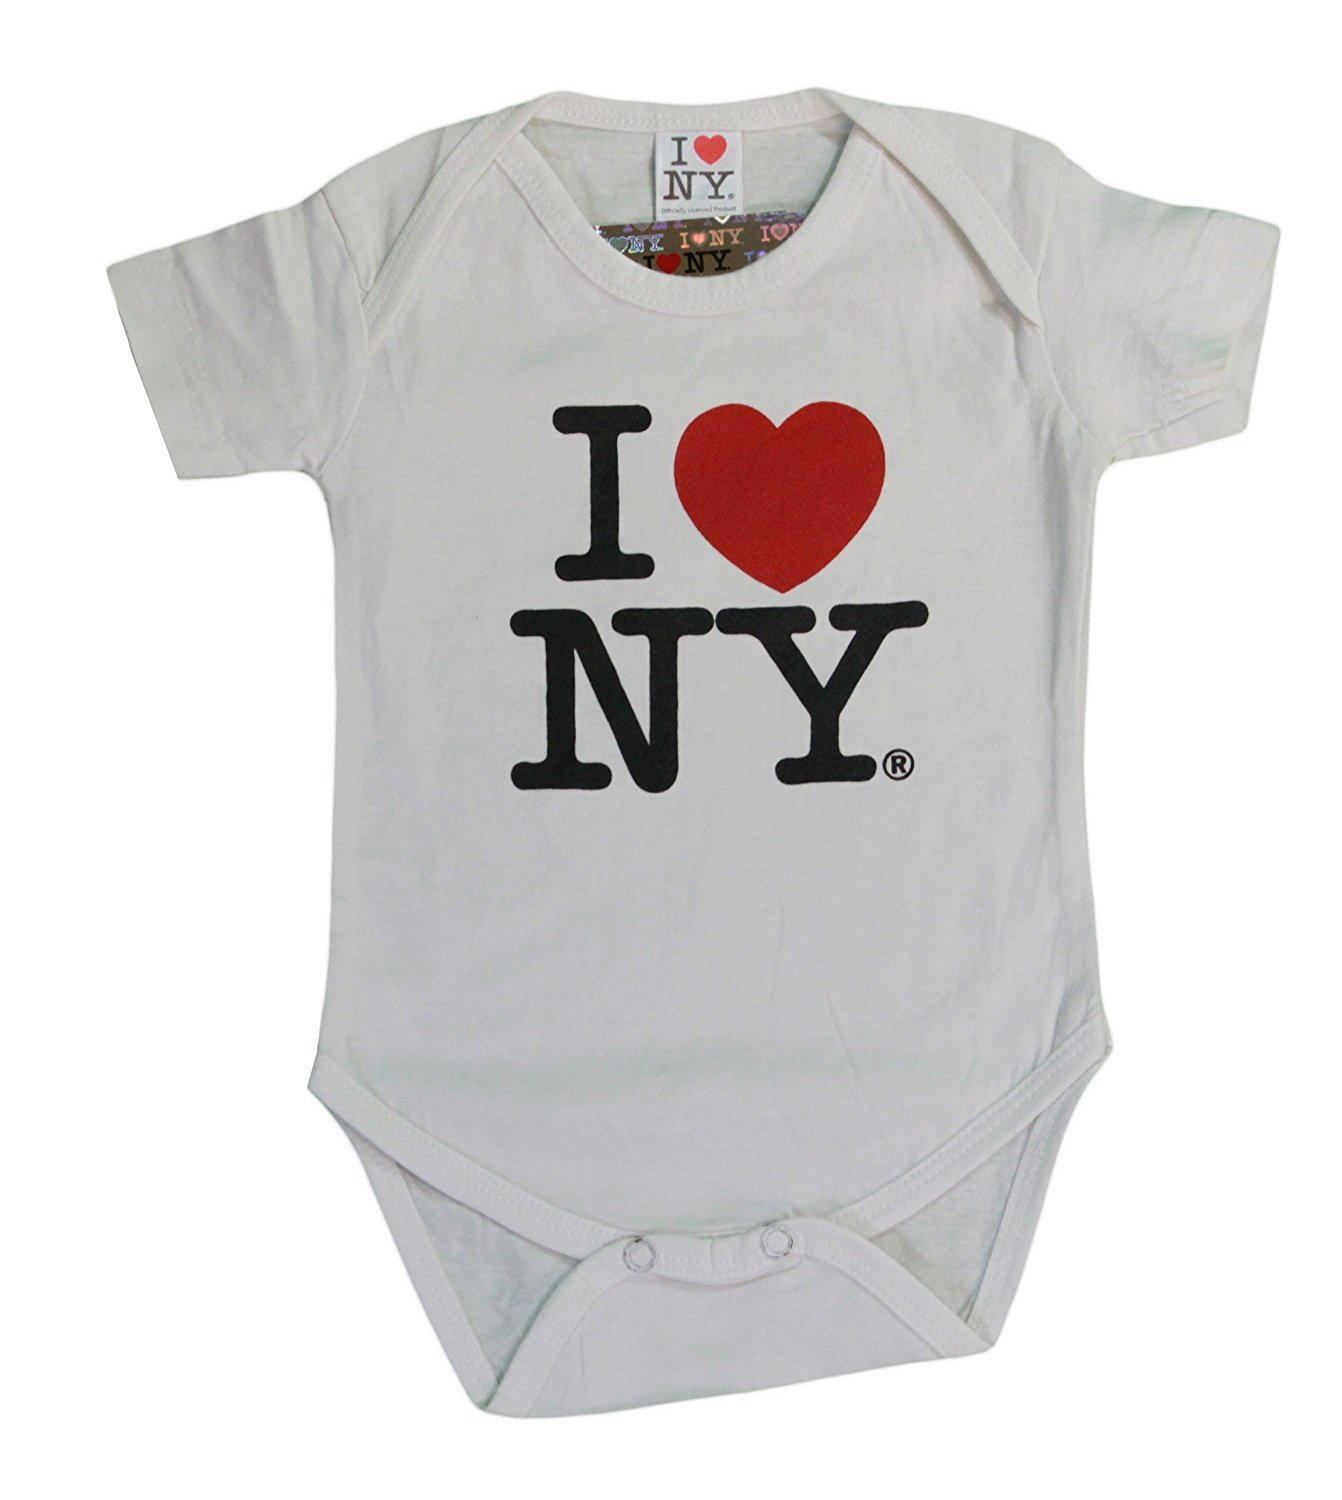 Newborn Baby Girl Boy I Love NY New York RomperRomper Jumpsuit Short Sleeved Bodysuit Tops Clothes